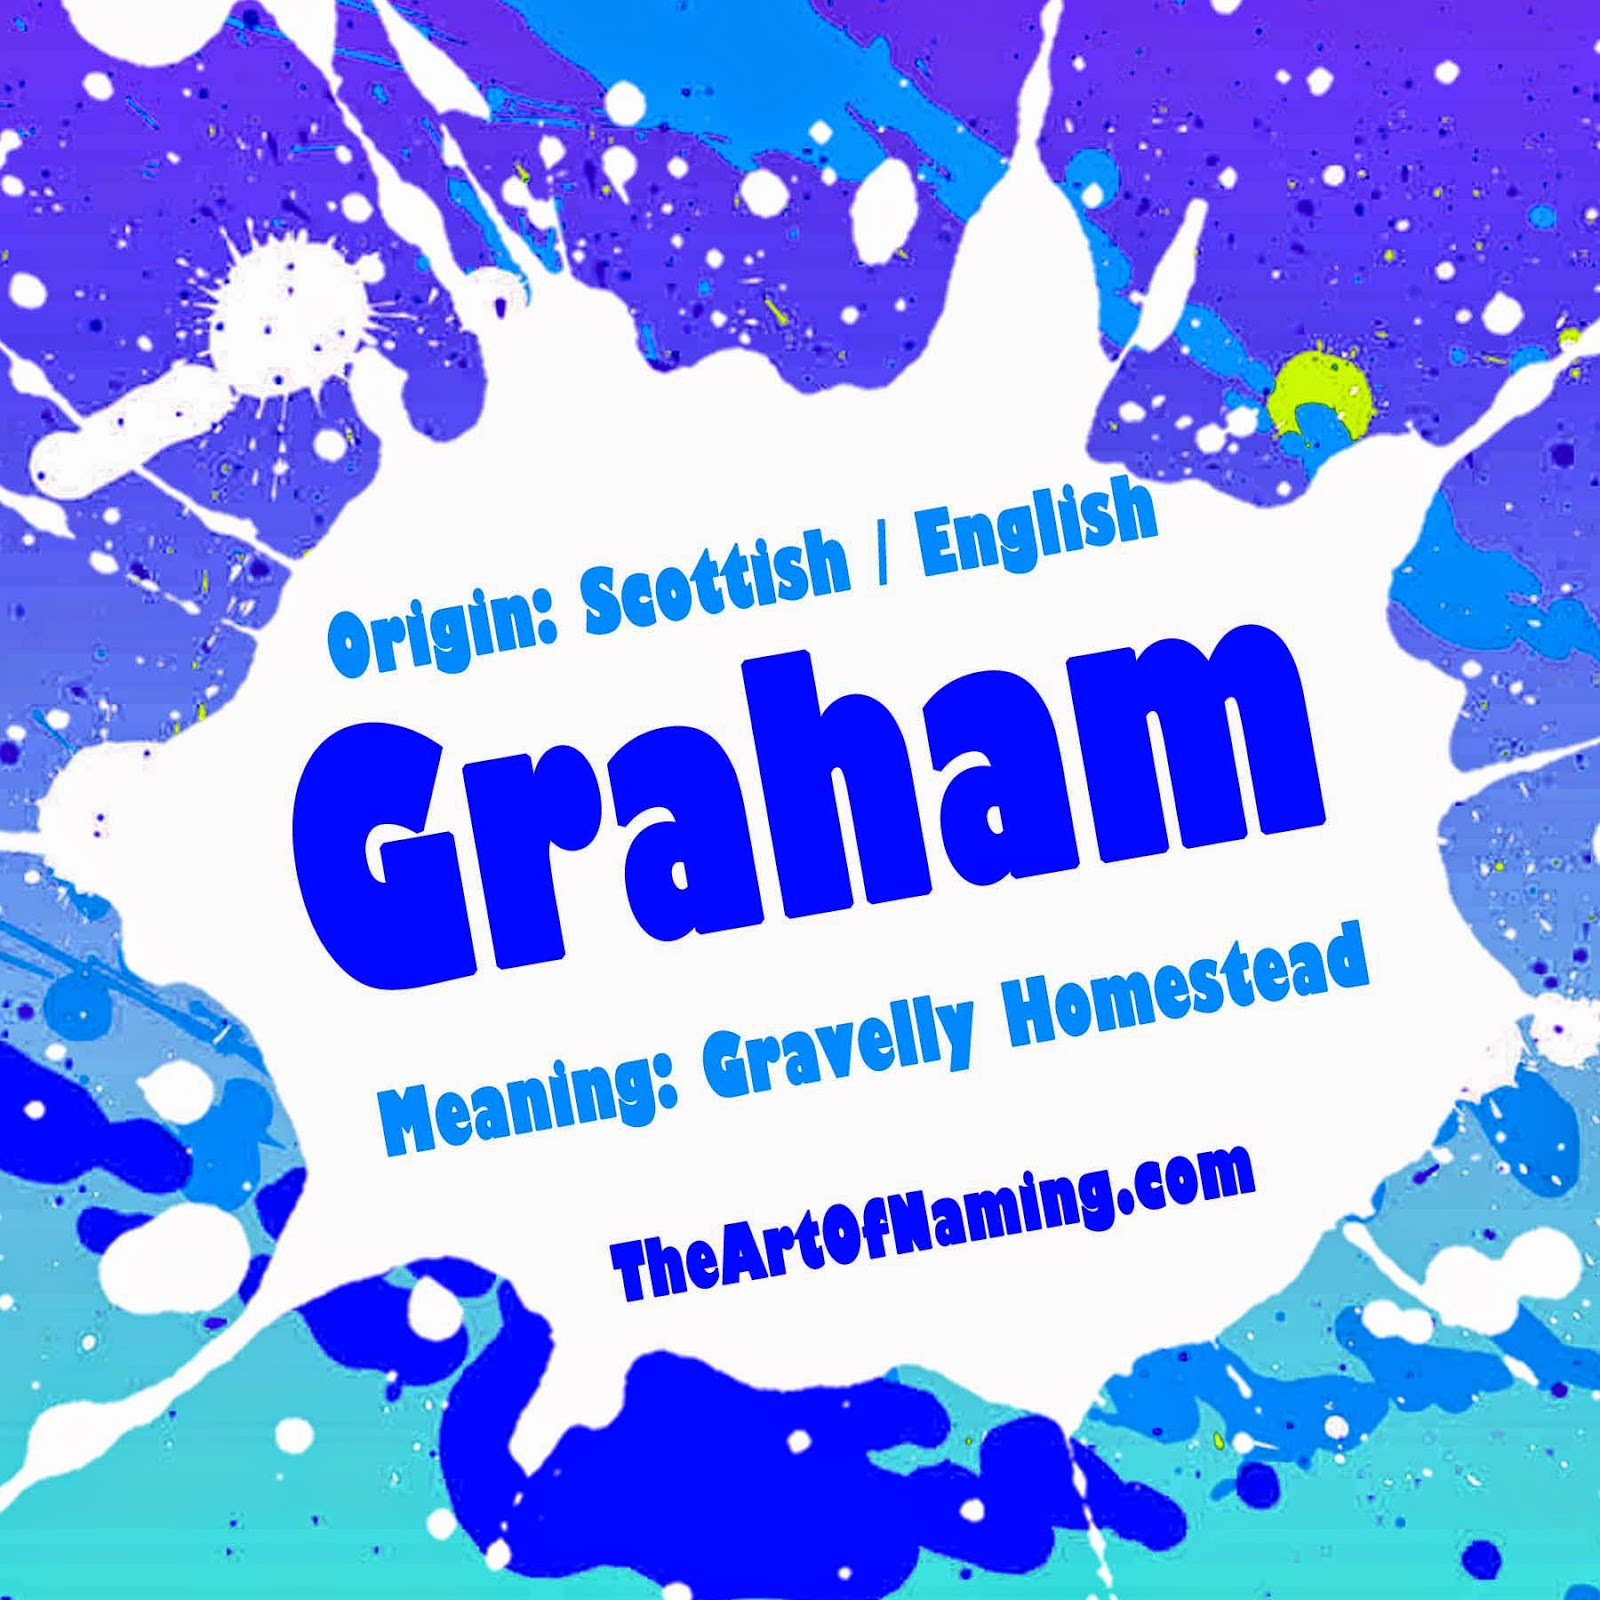 Graham Is A Scottish Surname Which Was Derived From The English Place Name Grantham This Likely To Mean Gravelly Homestead In Old